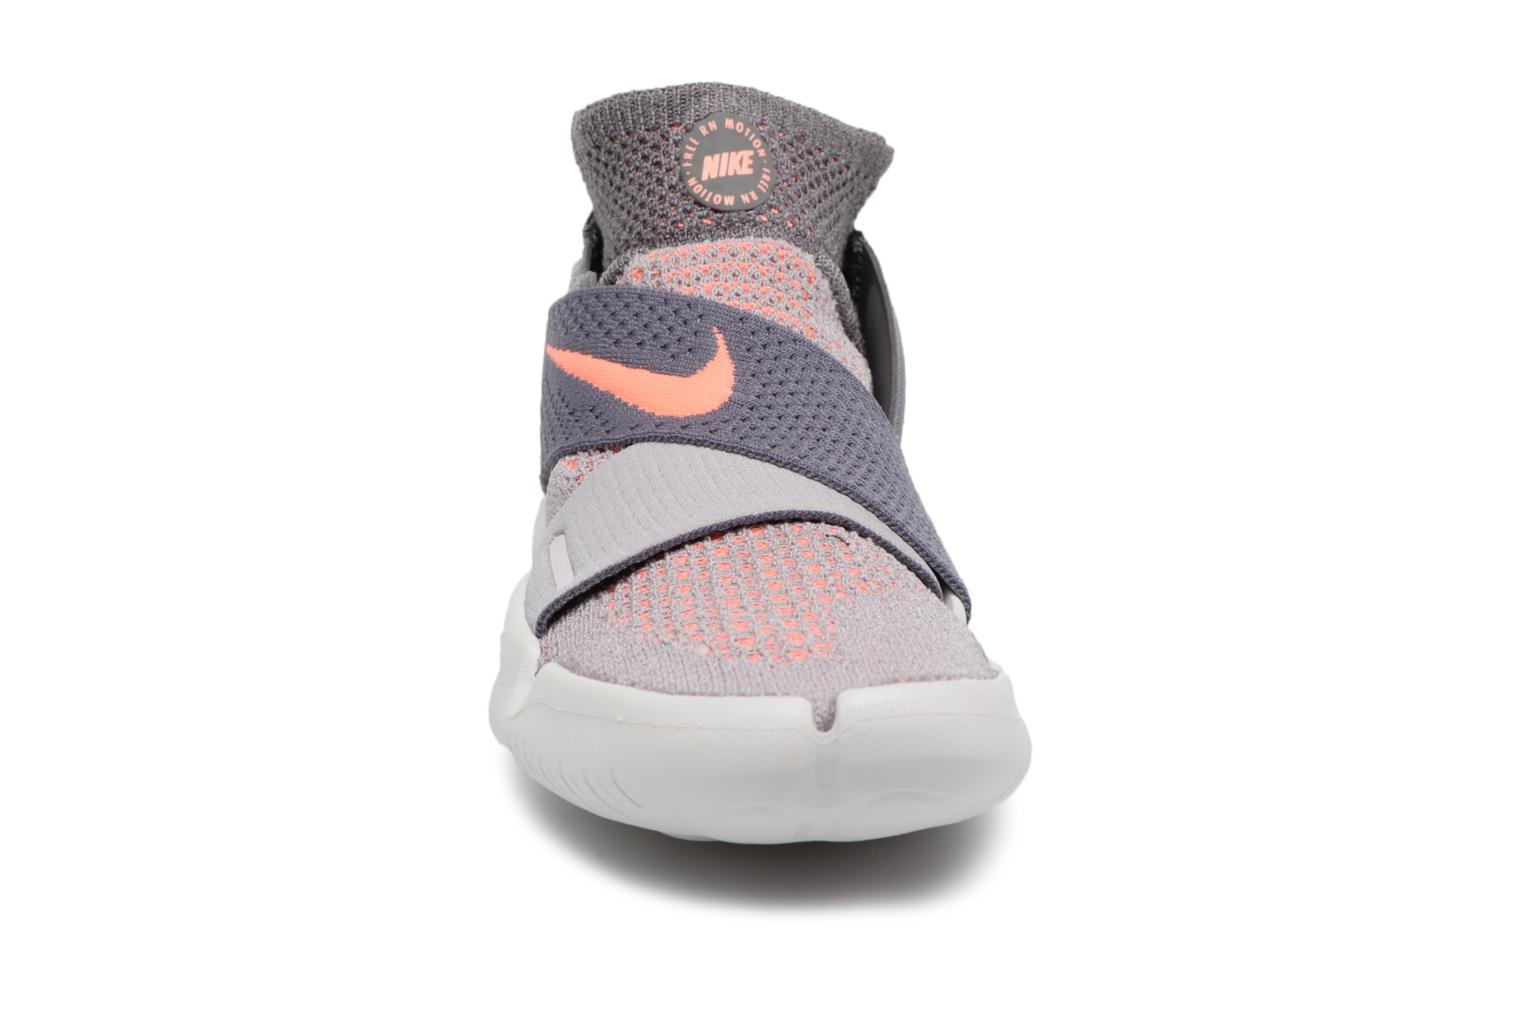 Zapatos promocionales Nike W Nike Free Rn Motion Fk 2018 (Gris